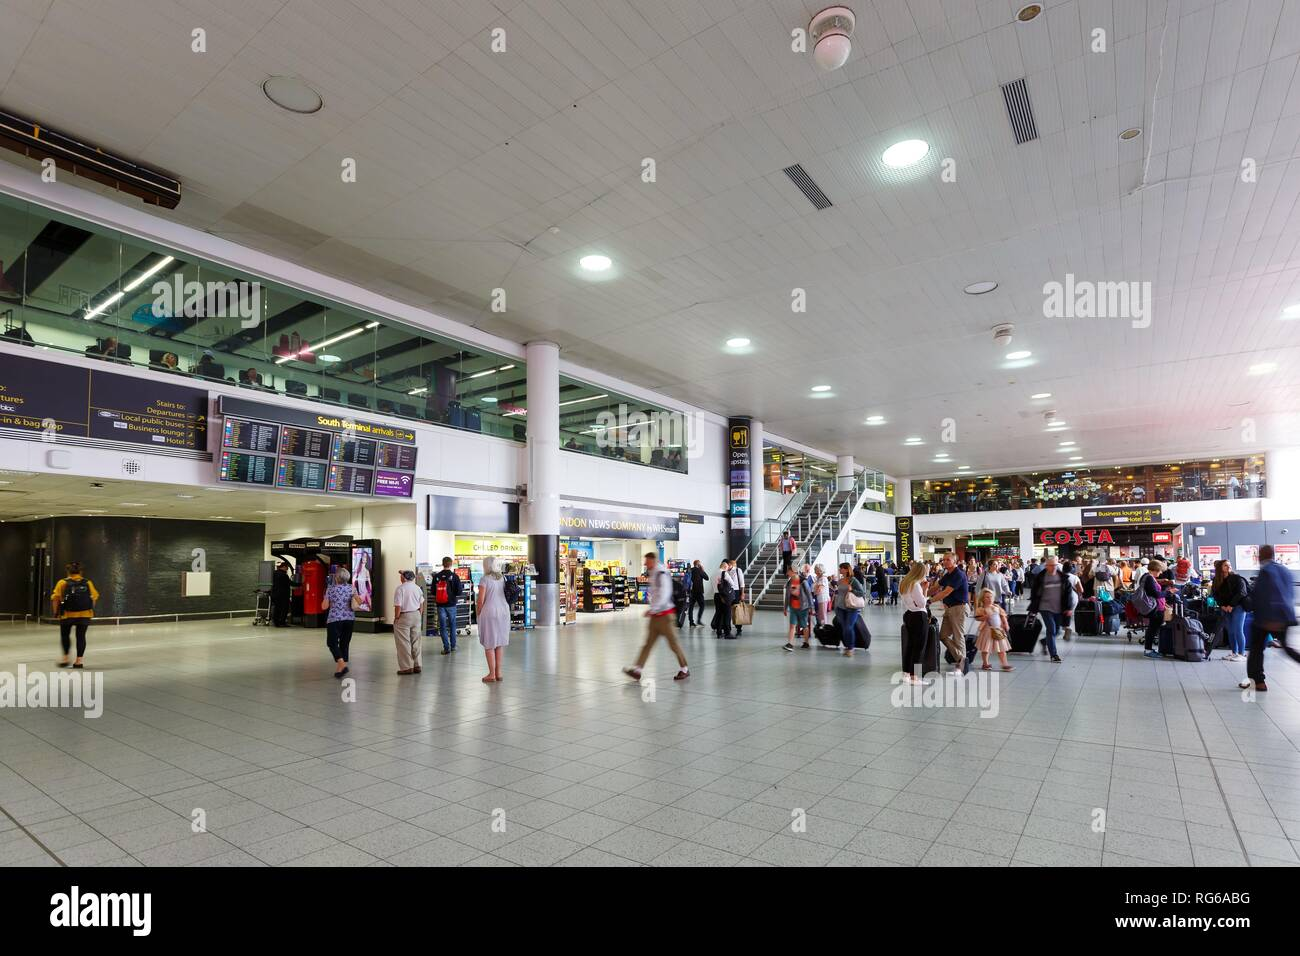 London, United Kingdom - July 31, 2018: South Terminal at London Gatwick airport (LGW) in the United Kingdom. | usage worldwide - Stock Image